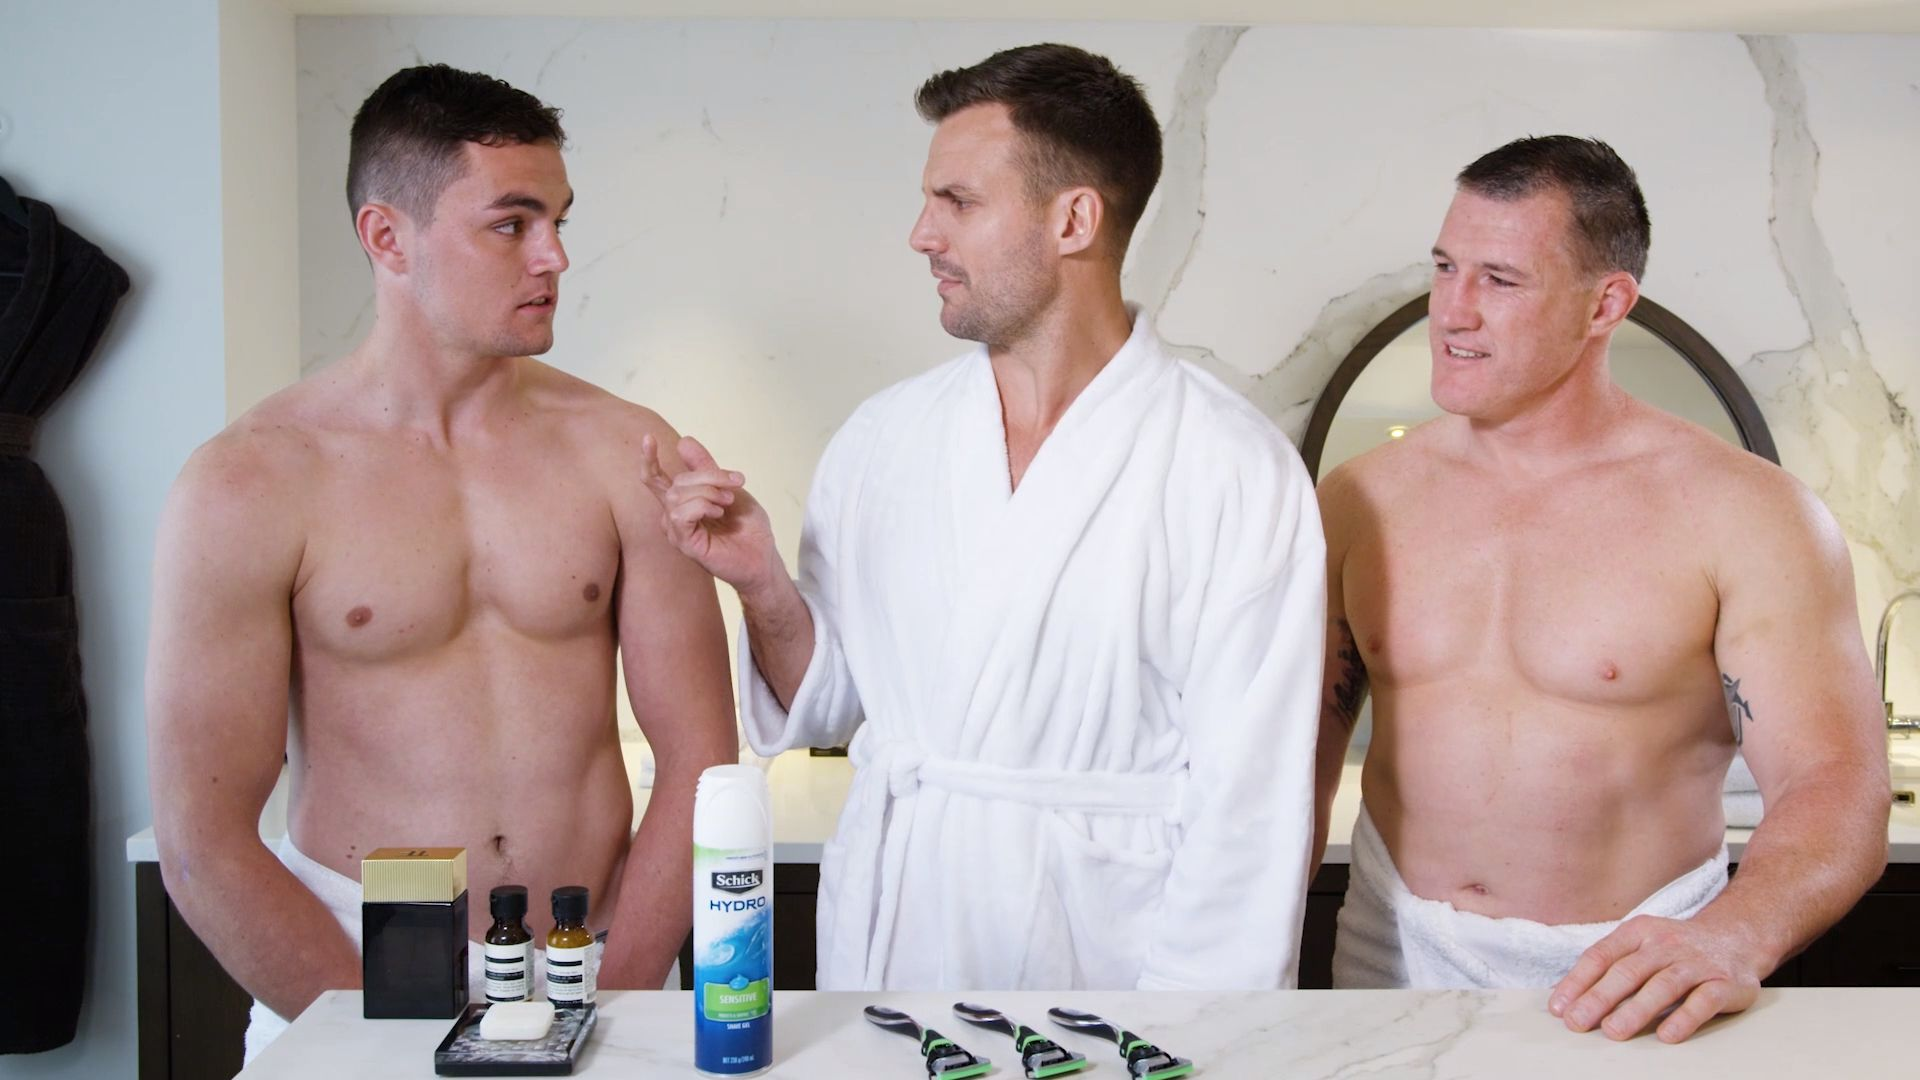 Looking schmick: How the pros prepare for the Dally M Awards